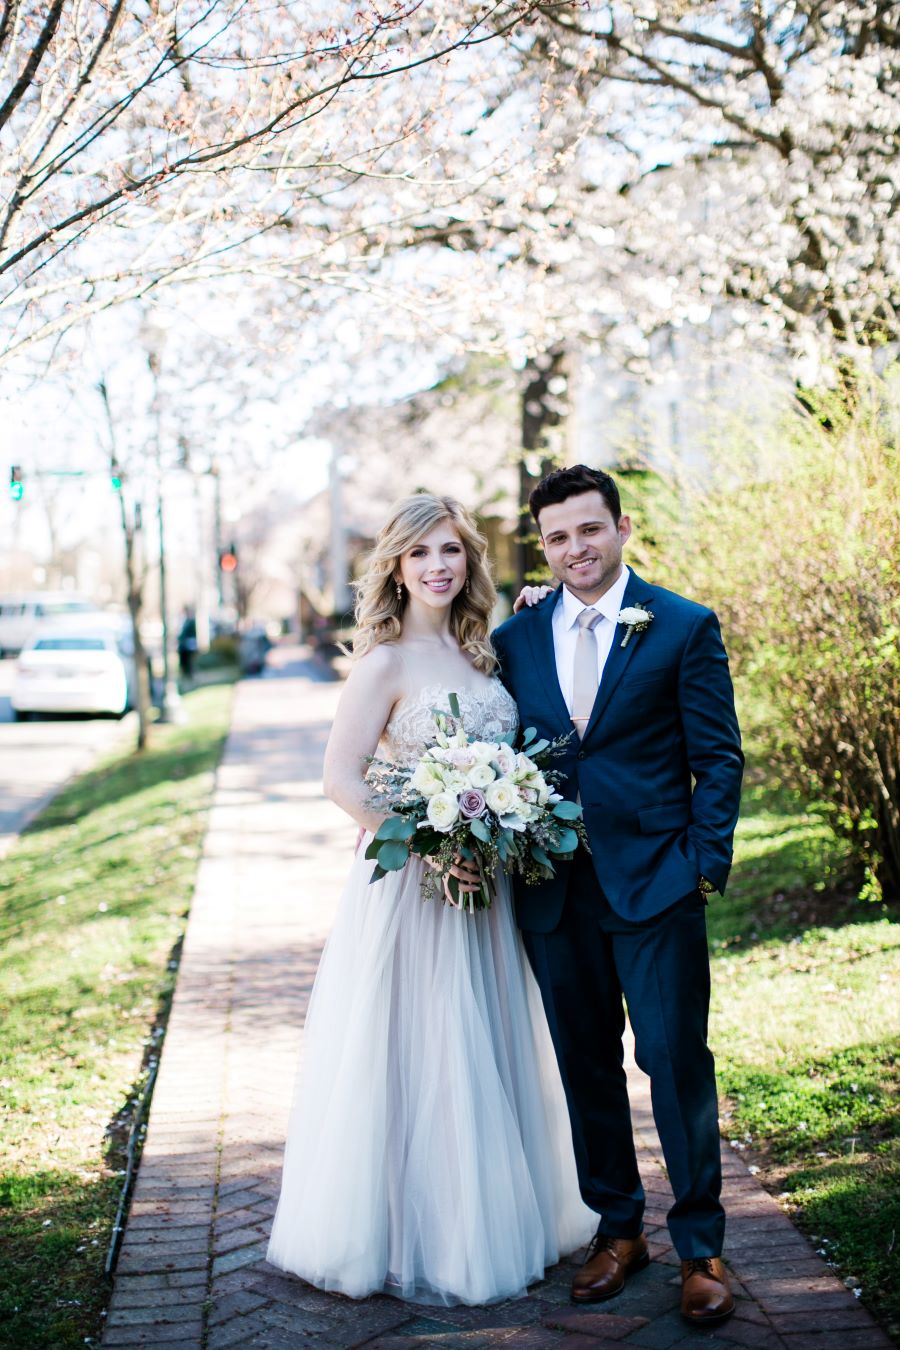 Bride and groom posing on brick sidewalk in front of wedding venue / Elopement / Spring / March / Dusty Rose